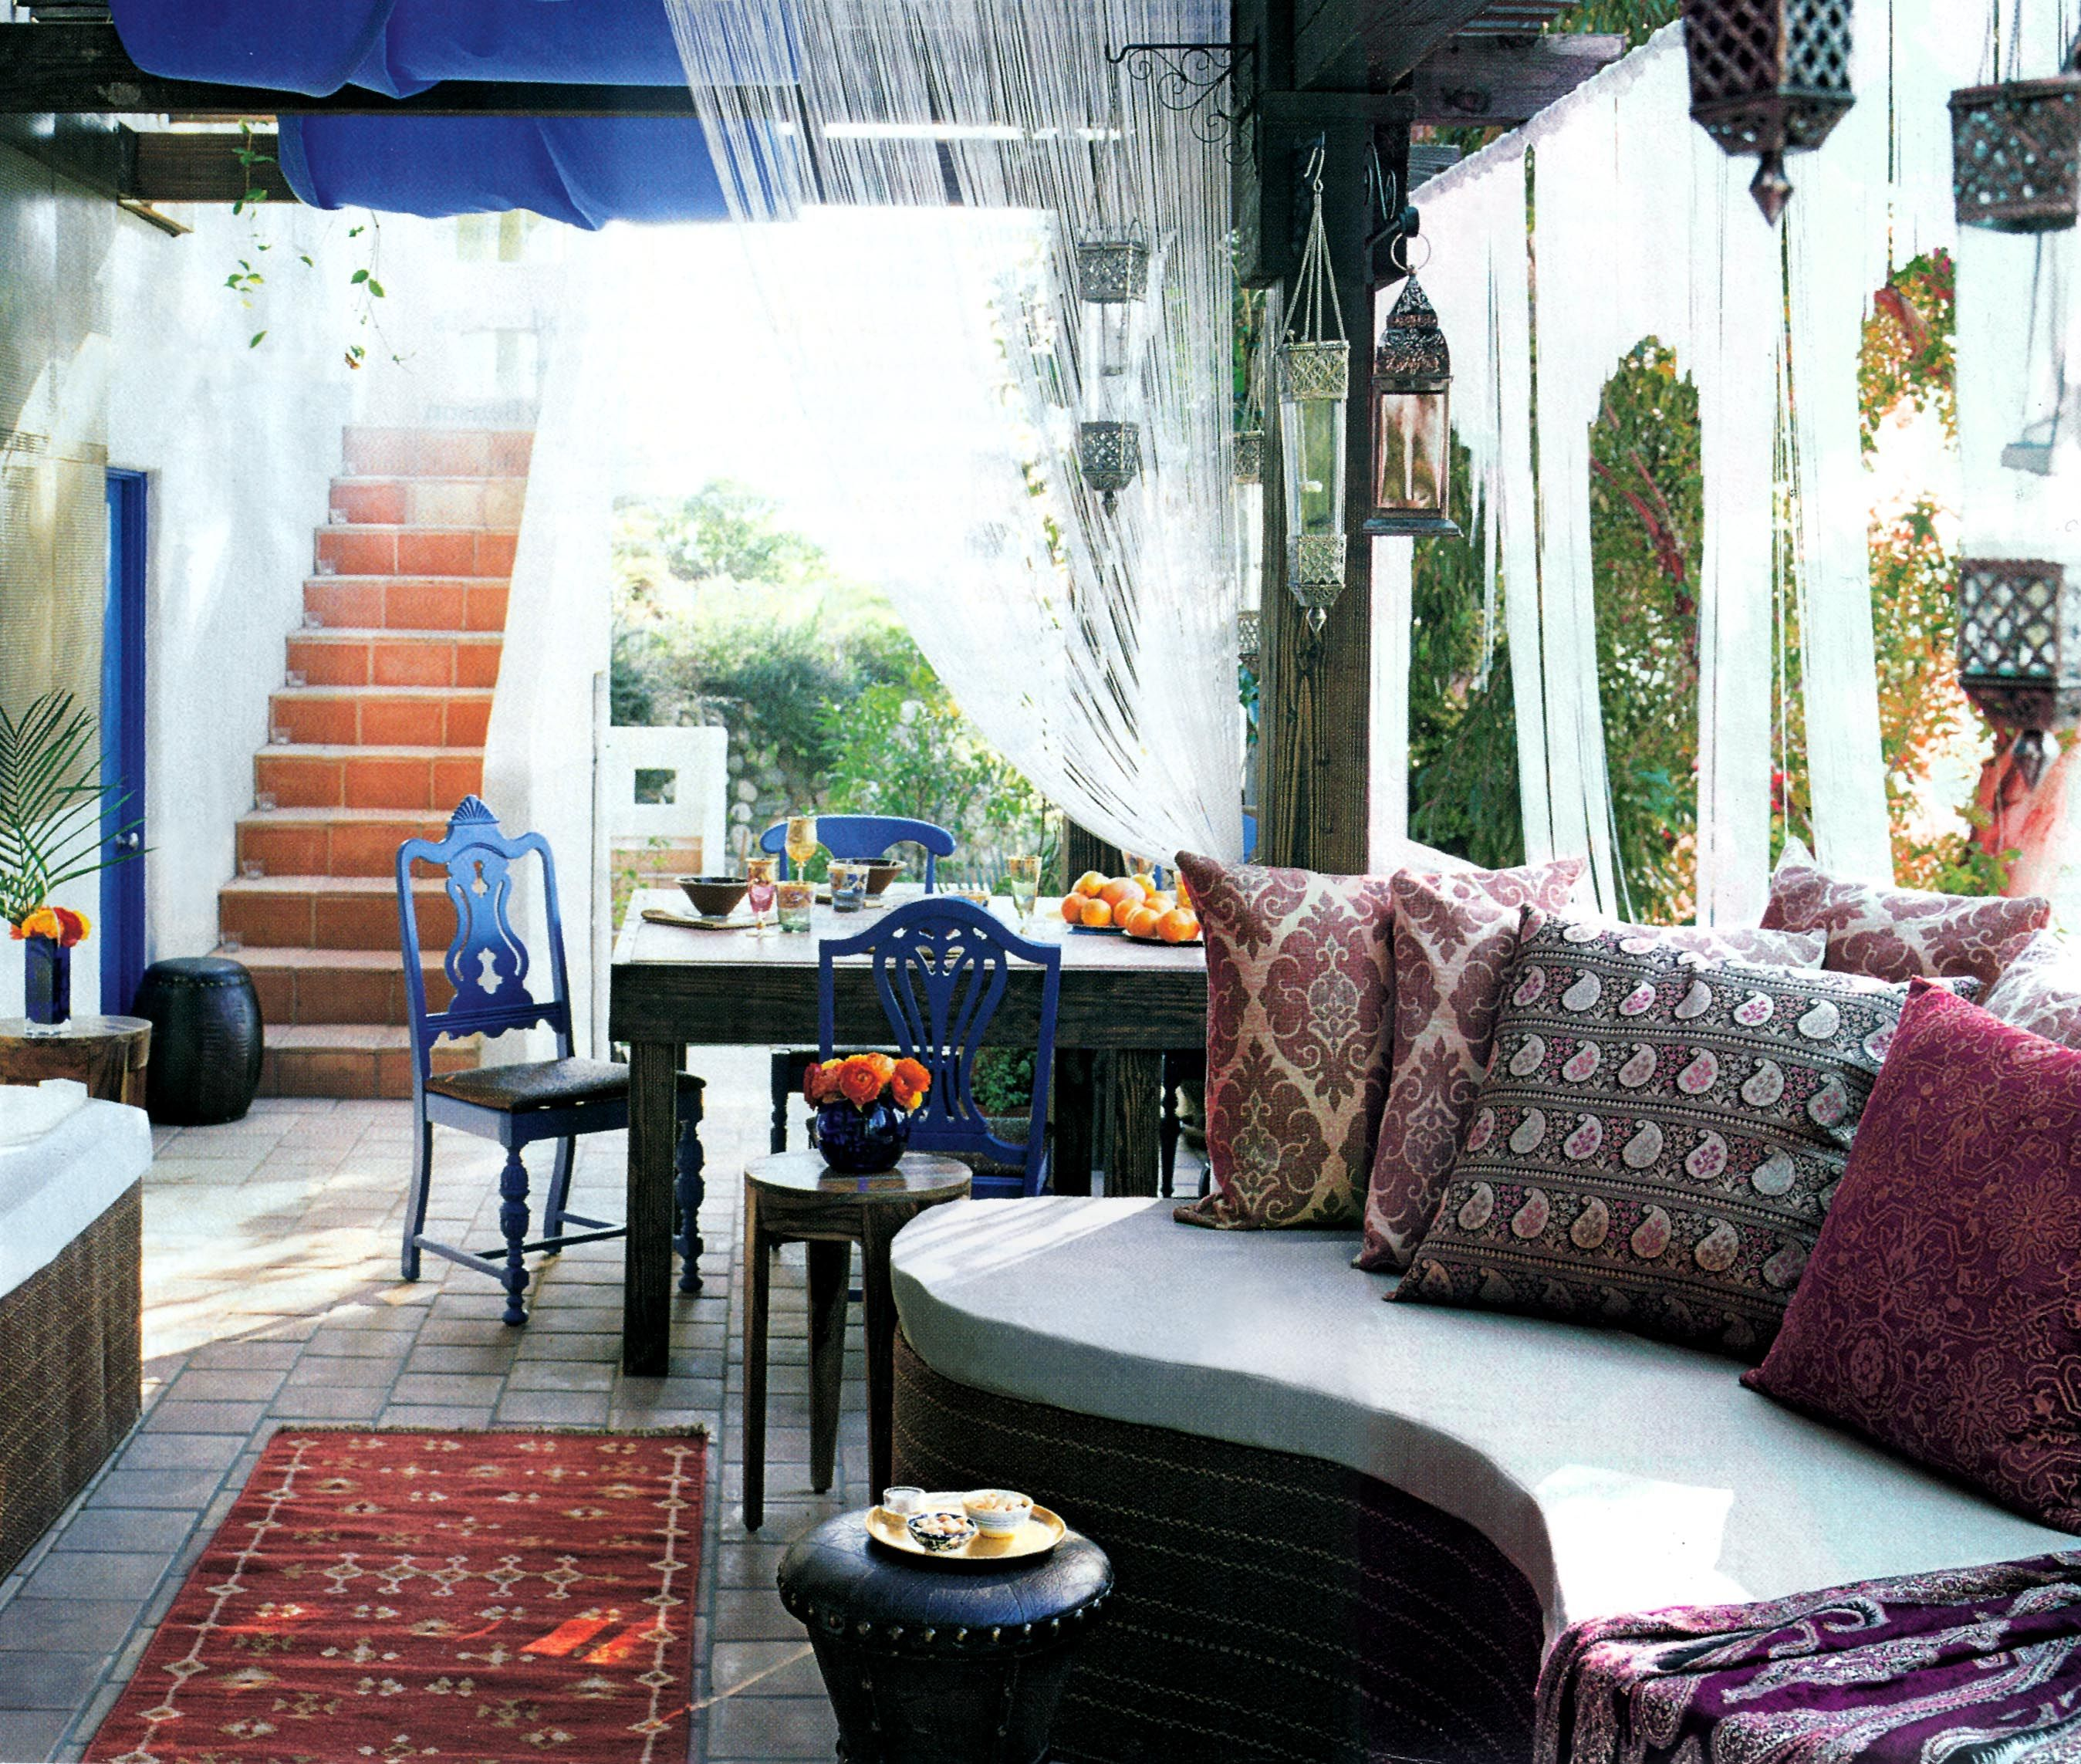 Elegant Moroccan Patio   I Cut Arches Into The String Curtains, And Painted  Mismatched 2nd Hand